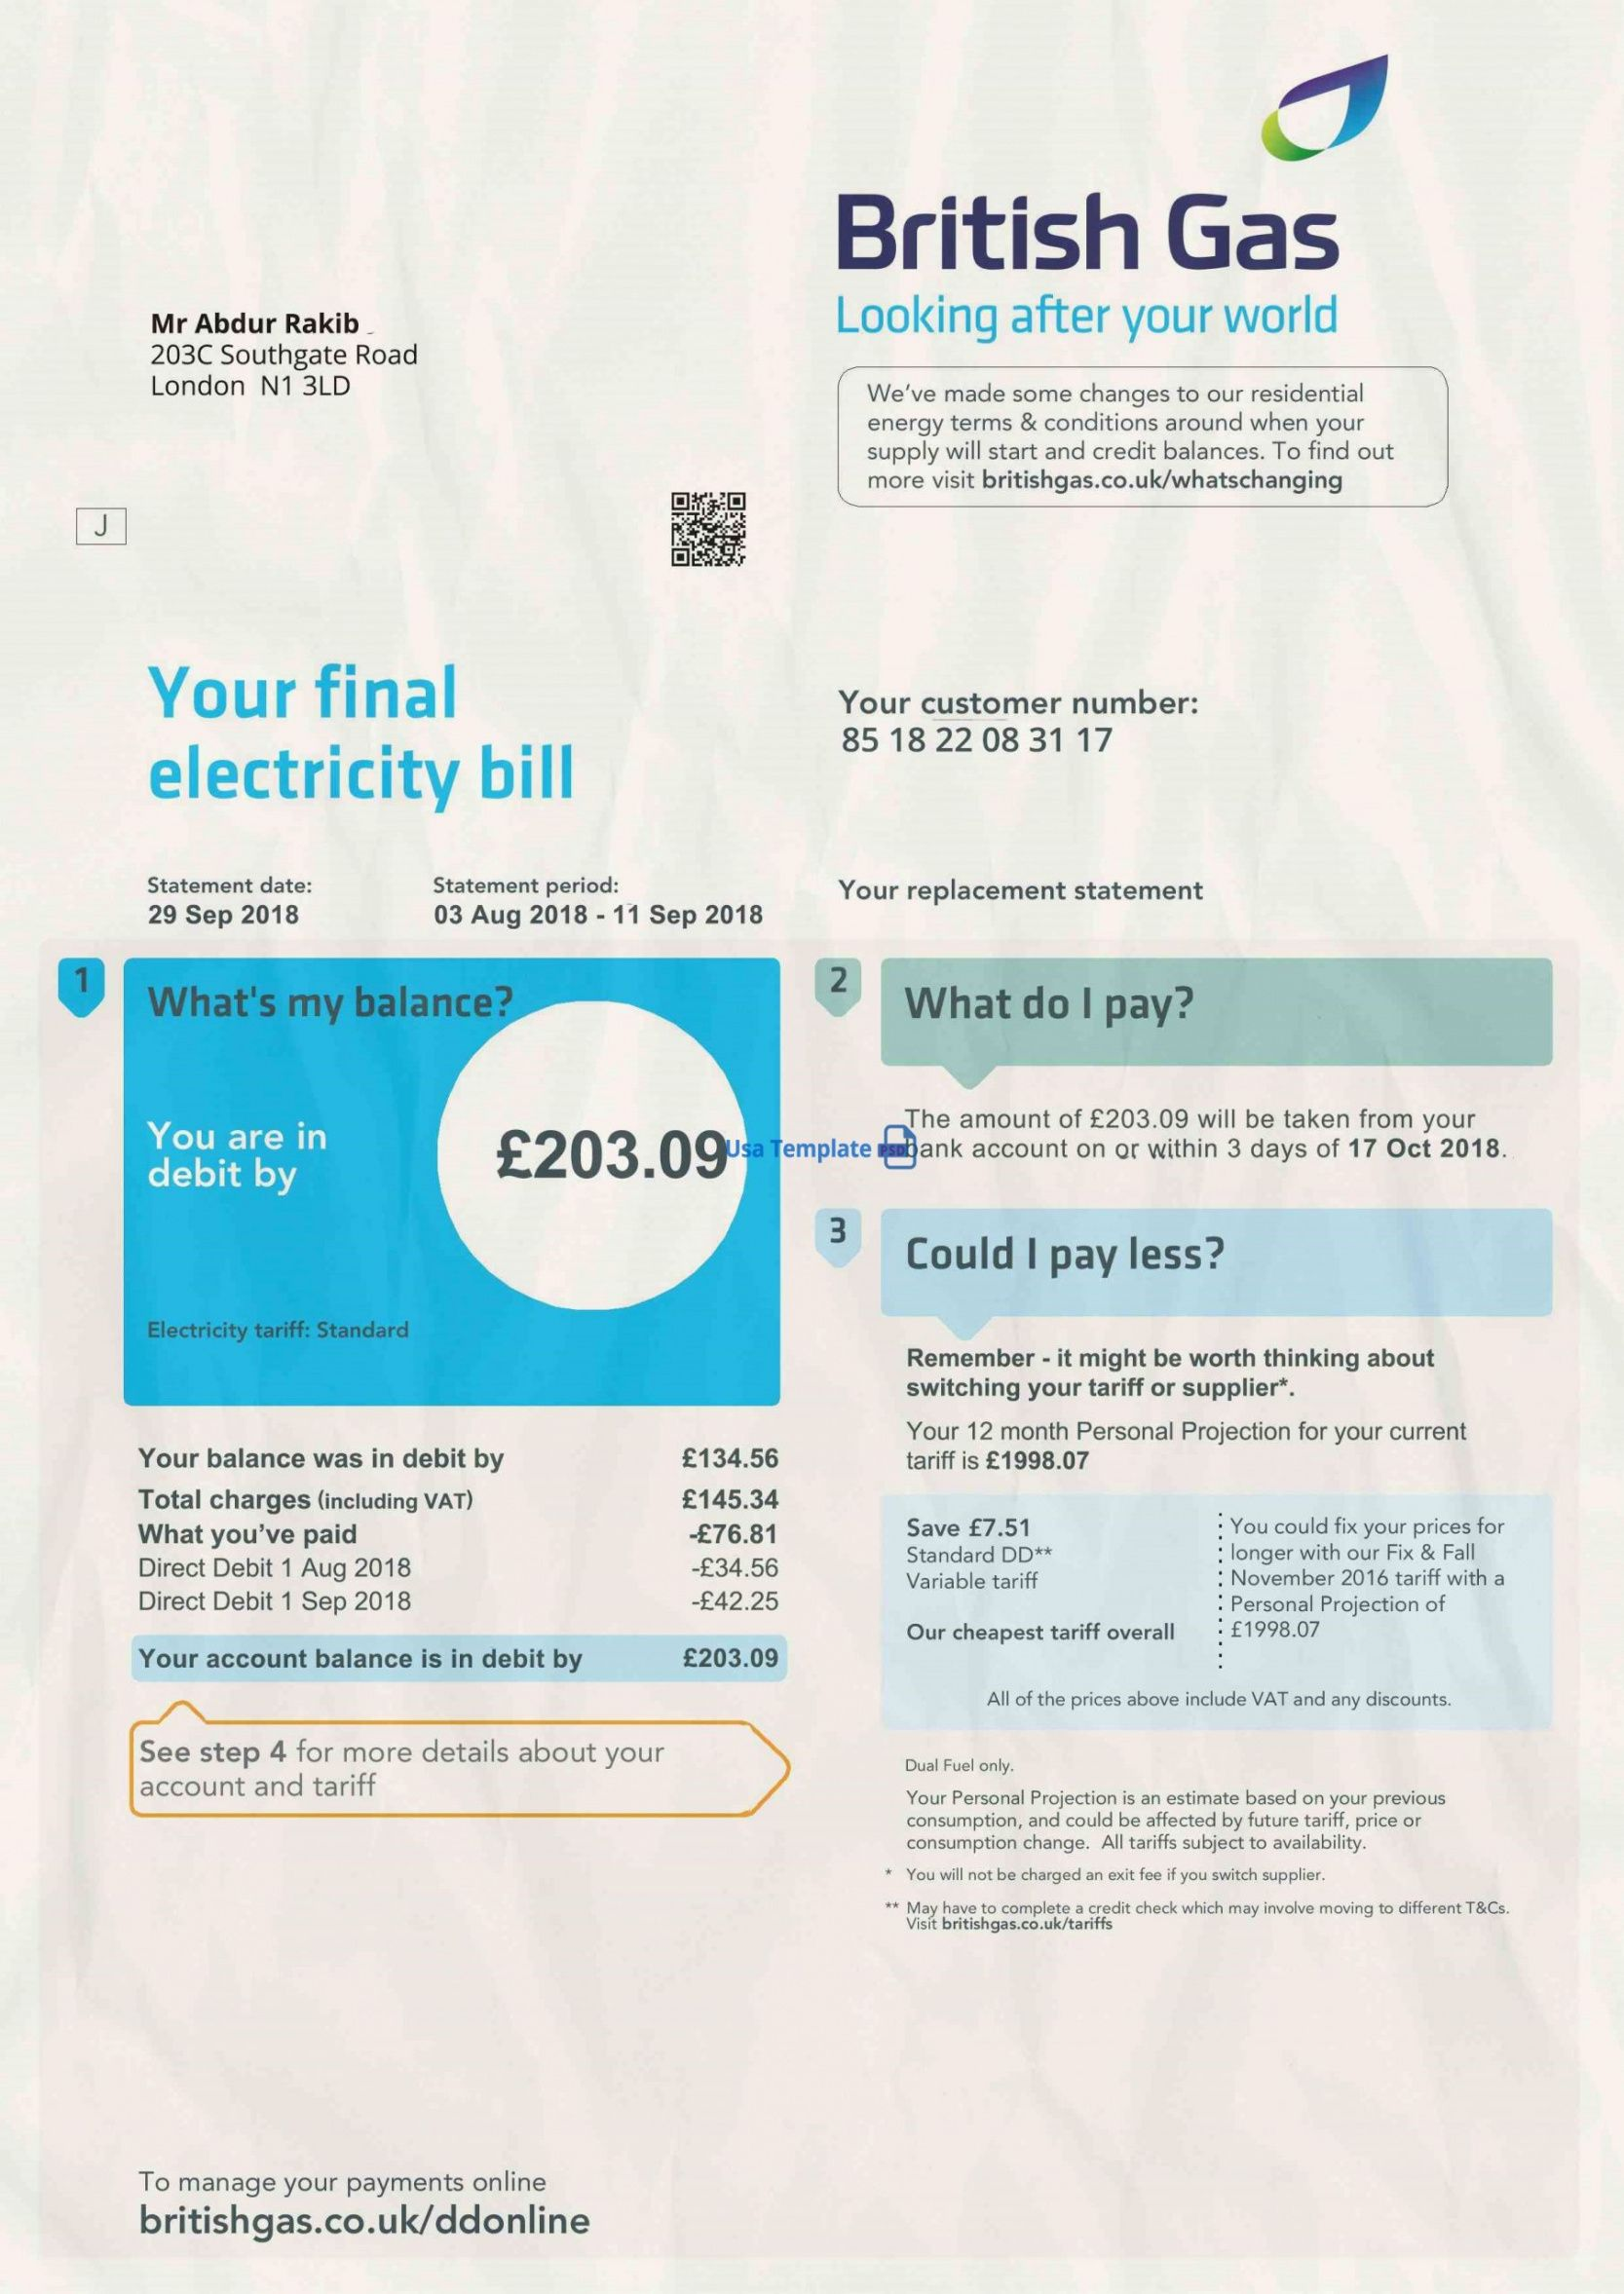 printable uk utility bill psd template 1 uk proof of address psd template 1  british gas bill psd template uk utility bill template word